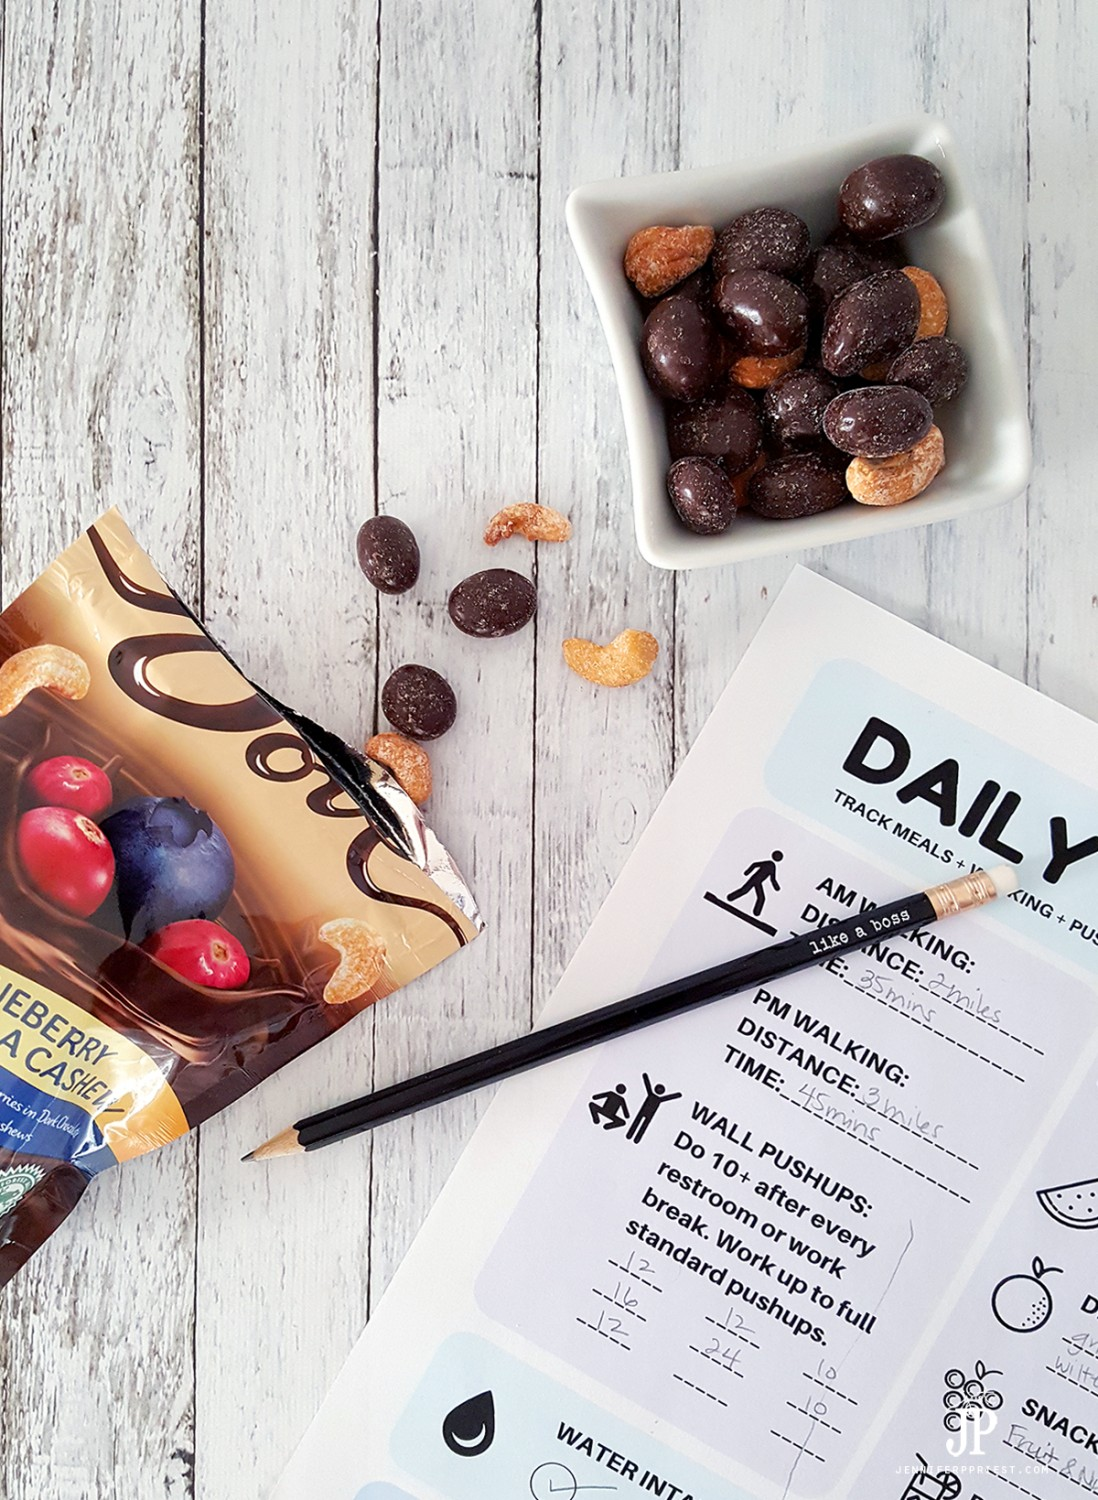 DOVE-Choclate-Fruit-and-Nut-as-smart-treat-JUSTJP